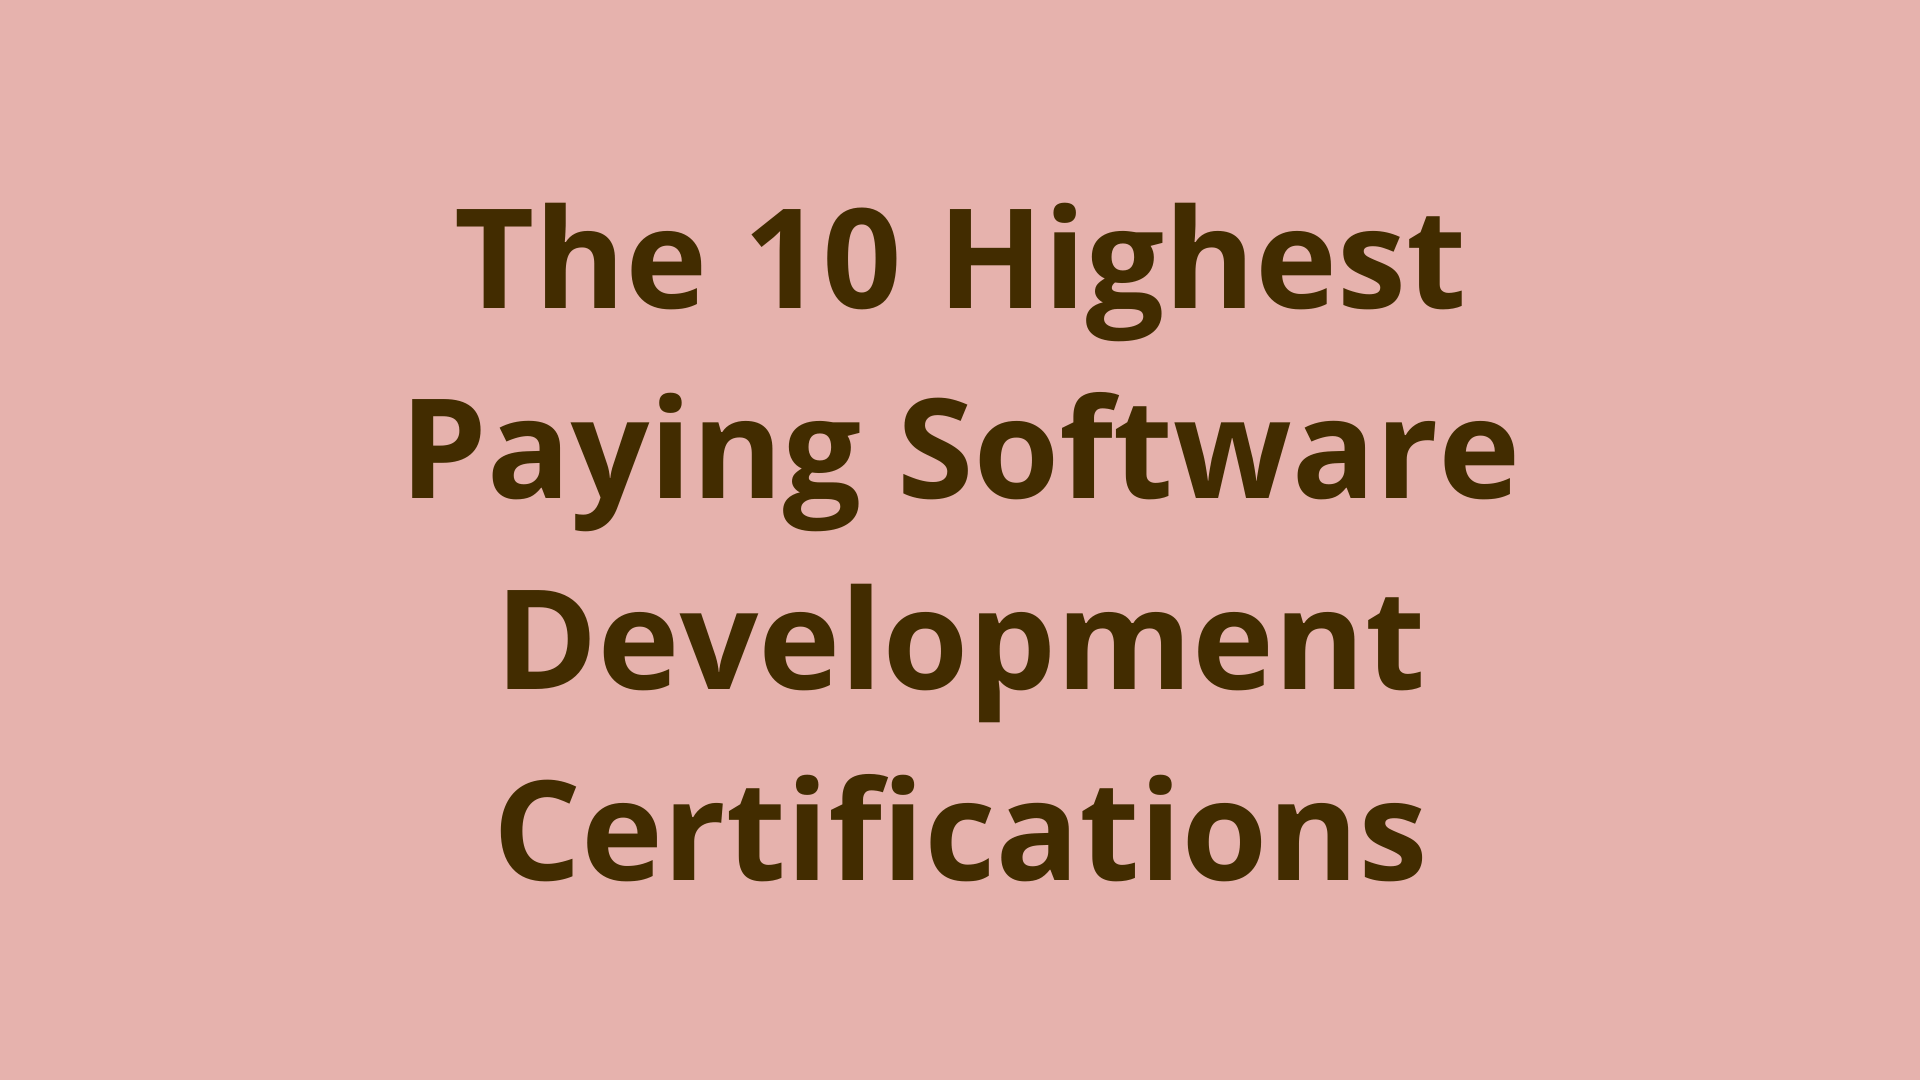 Image of The 10 highest paying software development certifications